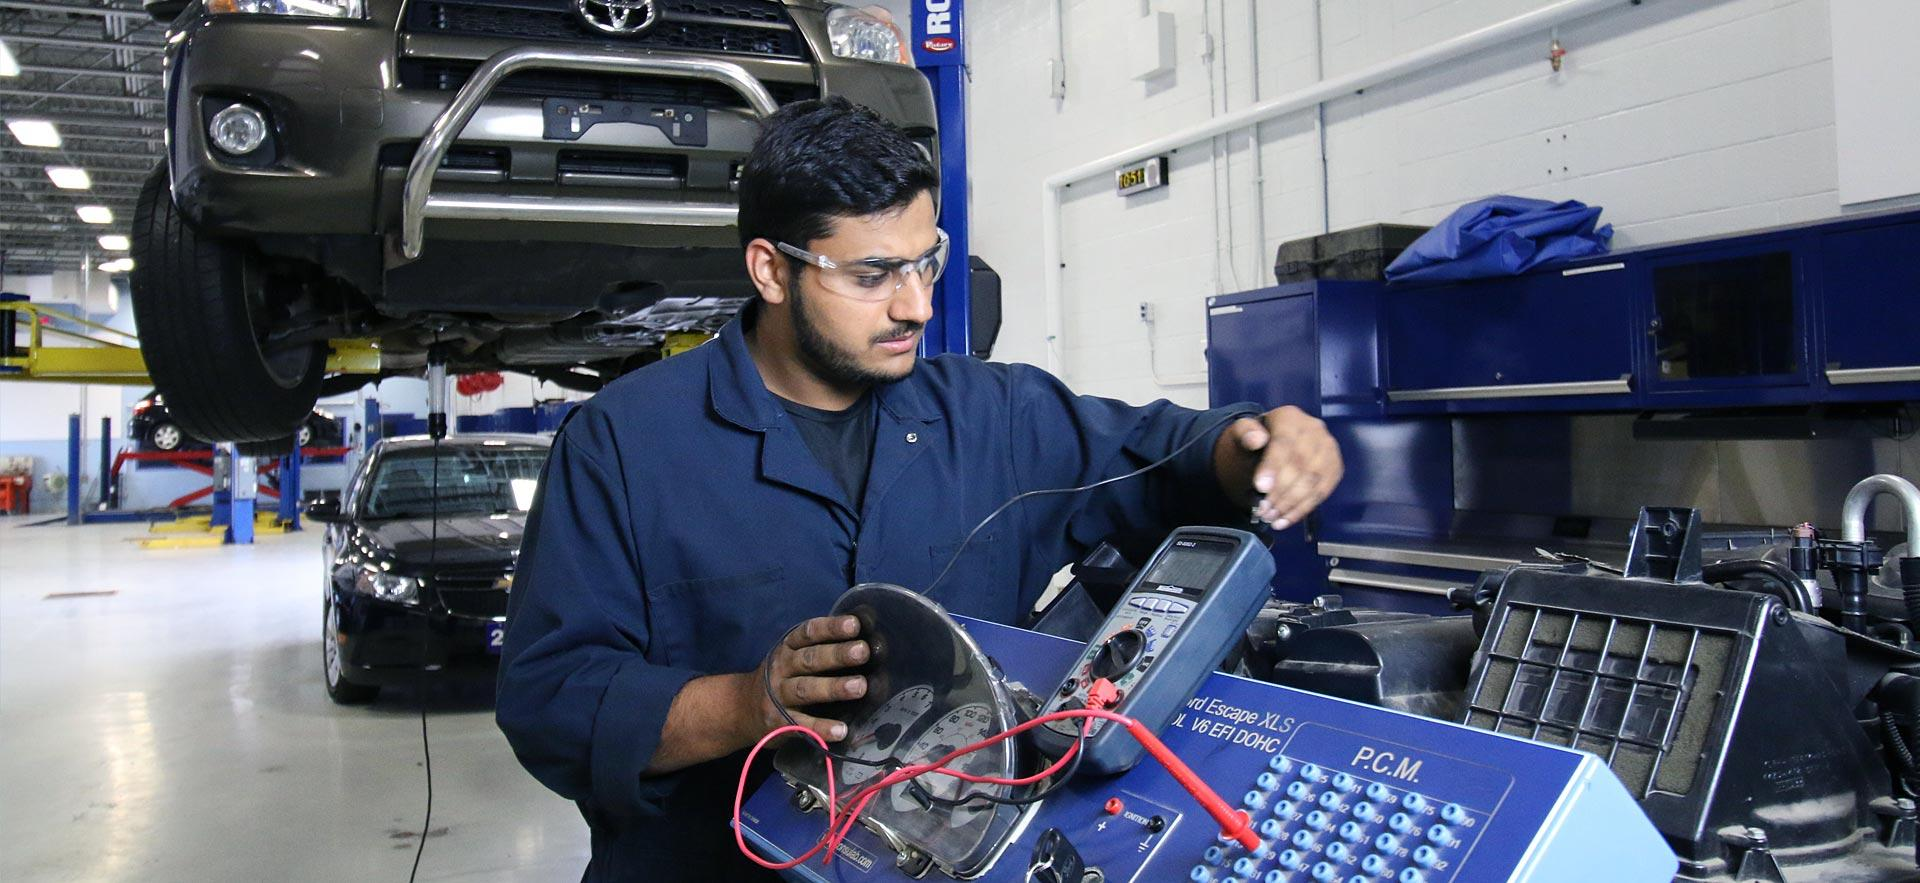 A male Motive Power Fundamentals - Automotive Repair student works on an engine.